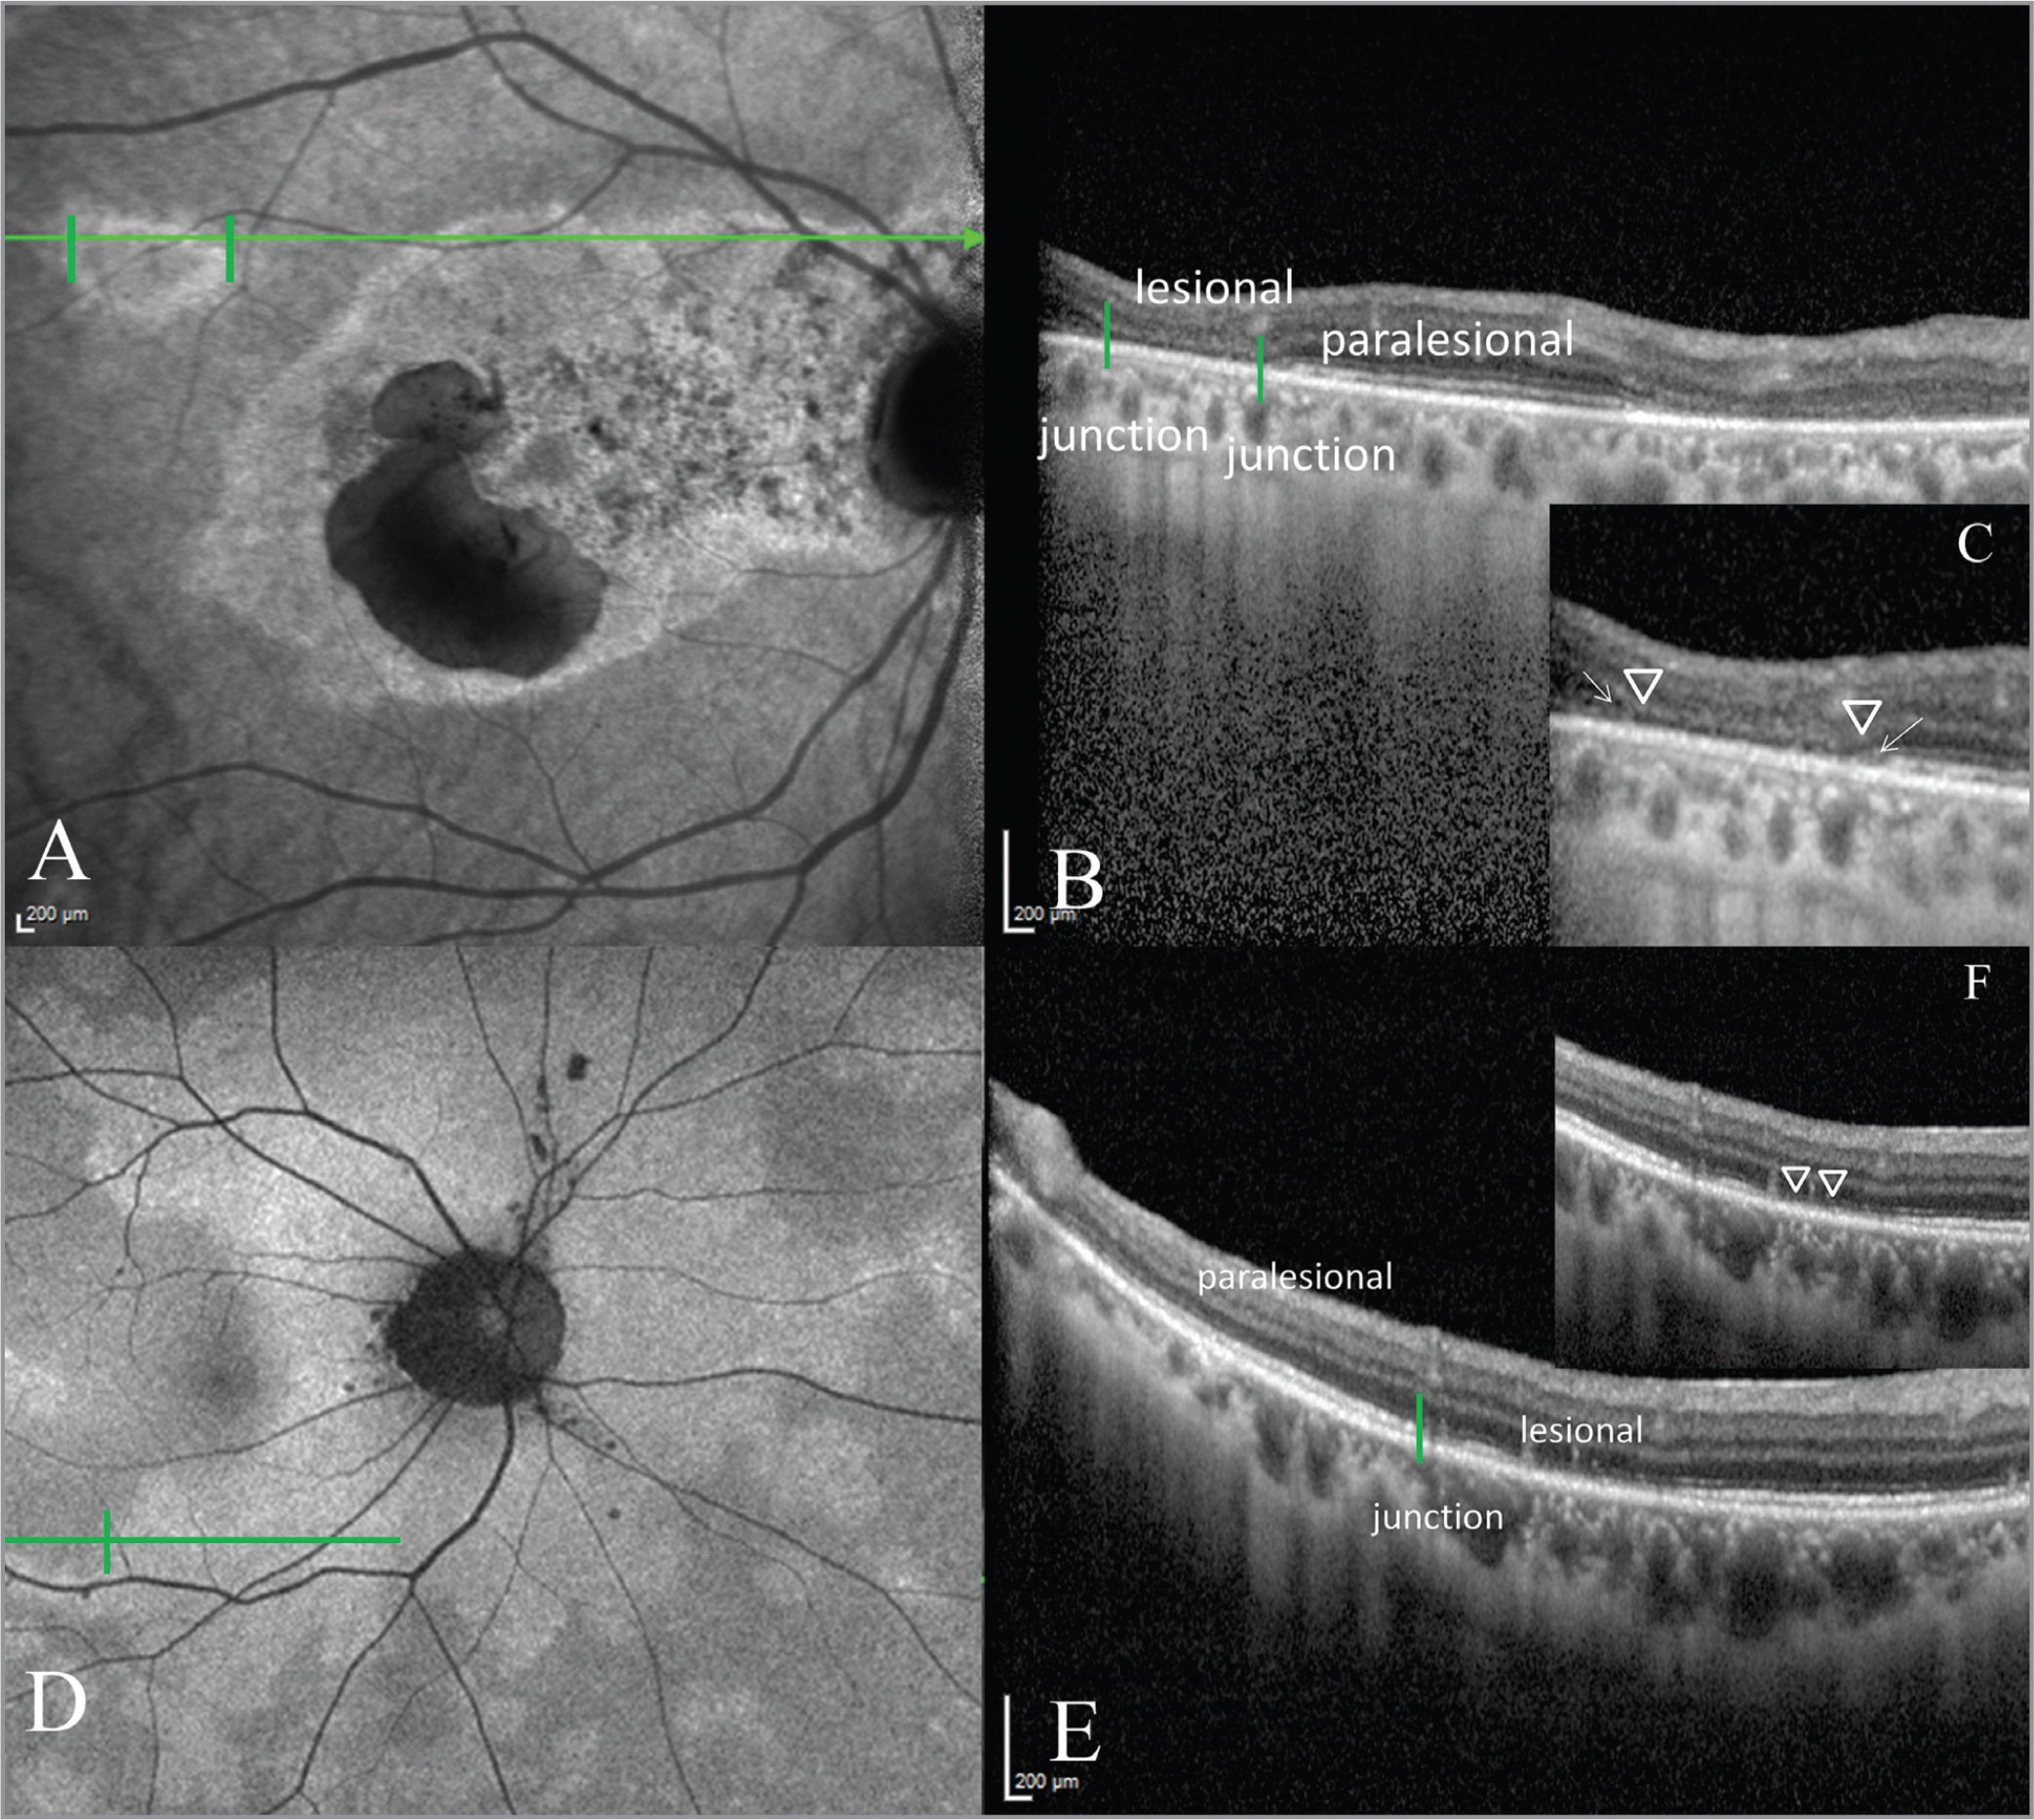 Near infrared fundus autofluorescence of the right eye of a patient with persistent hyperautofluorescence (A) with the lesion of interest demarcated in green and the corresponding optical coherence tomography (OCT) image (B). This demonstrated the loss of outer retinal layers, including the ellipsoid zone (EZ), external limiting membrane (ELM), and outer nuclear layer (ONL) in the lesional zone (C; arrowhead to arrowhead) and a flat ELM descent and outer plexiform layer (OPL) slope at the junctional zone (C; arrows). In D, we observe the border of a hyperautofluorescent zone in a patient with transient hyperautofluorescence. The OCT (E) demonstrates a disruption of the EZ in the lesional area (F; arrowhead to arrowhead) without ELM descent or OPL slope at the junction between the lesional and paralesional areas (E; green vertical line).